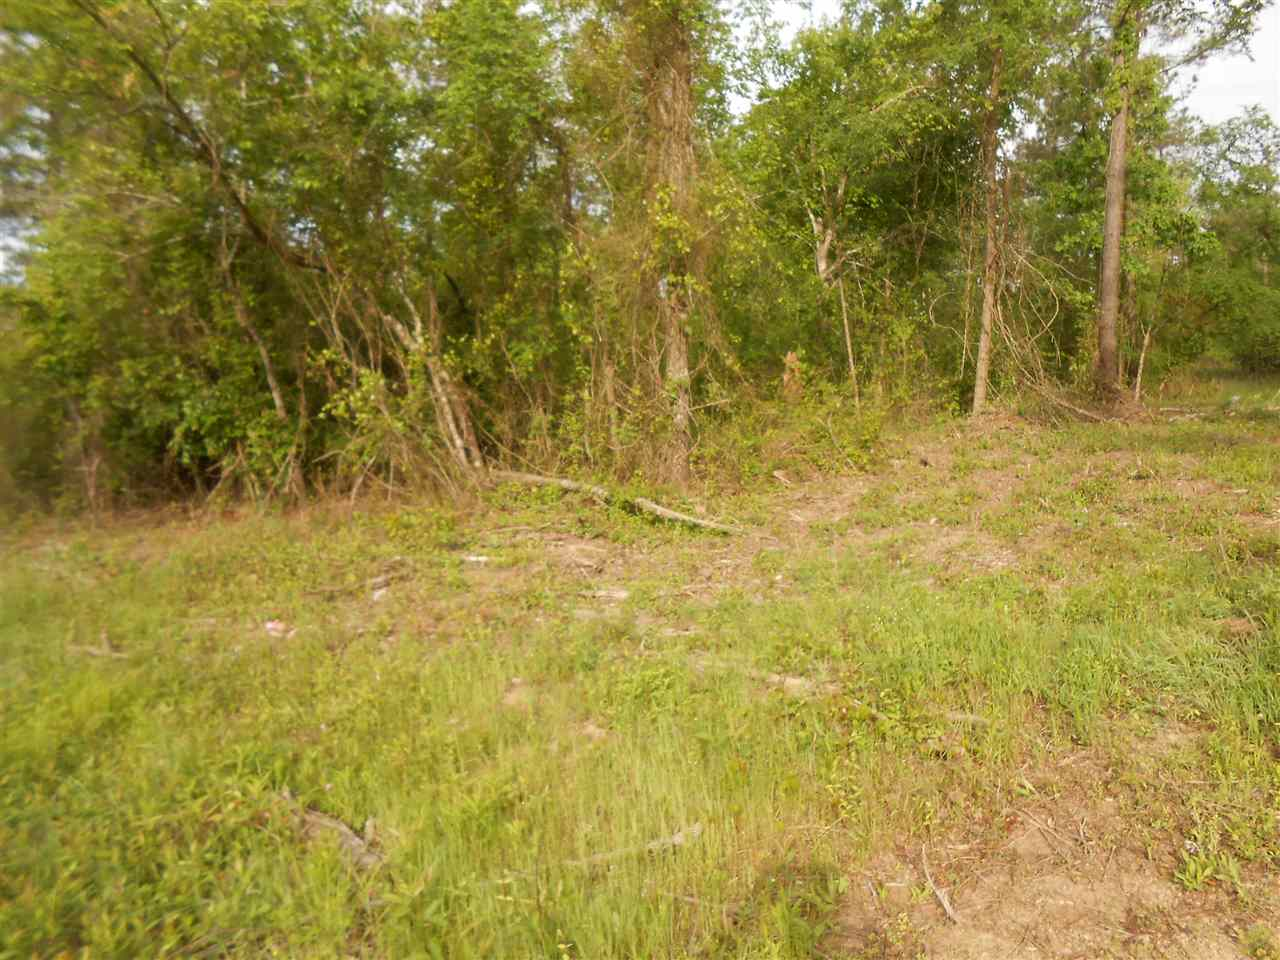 Image of Residential for Sale near Kirby, Arkansas, in Pike county: 130.00 acres